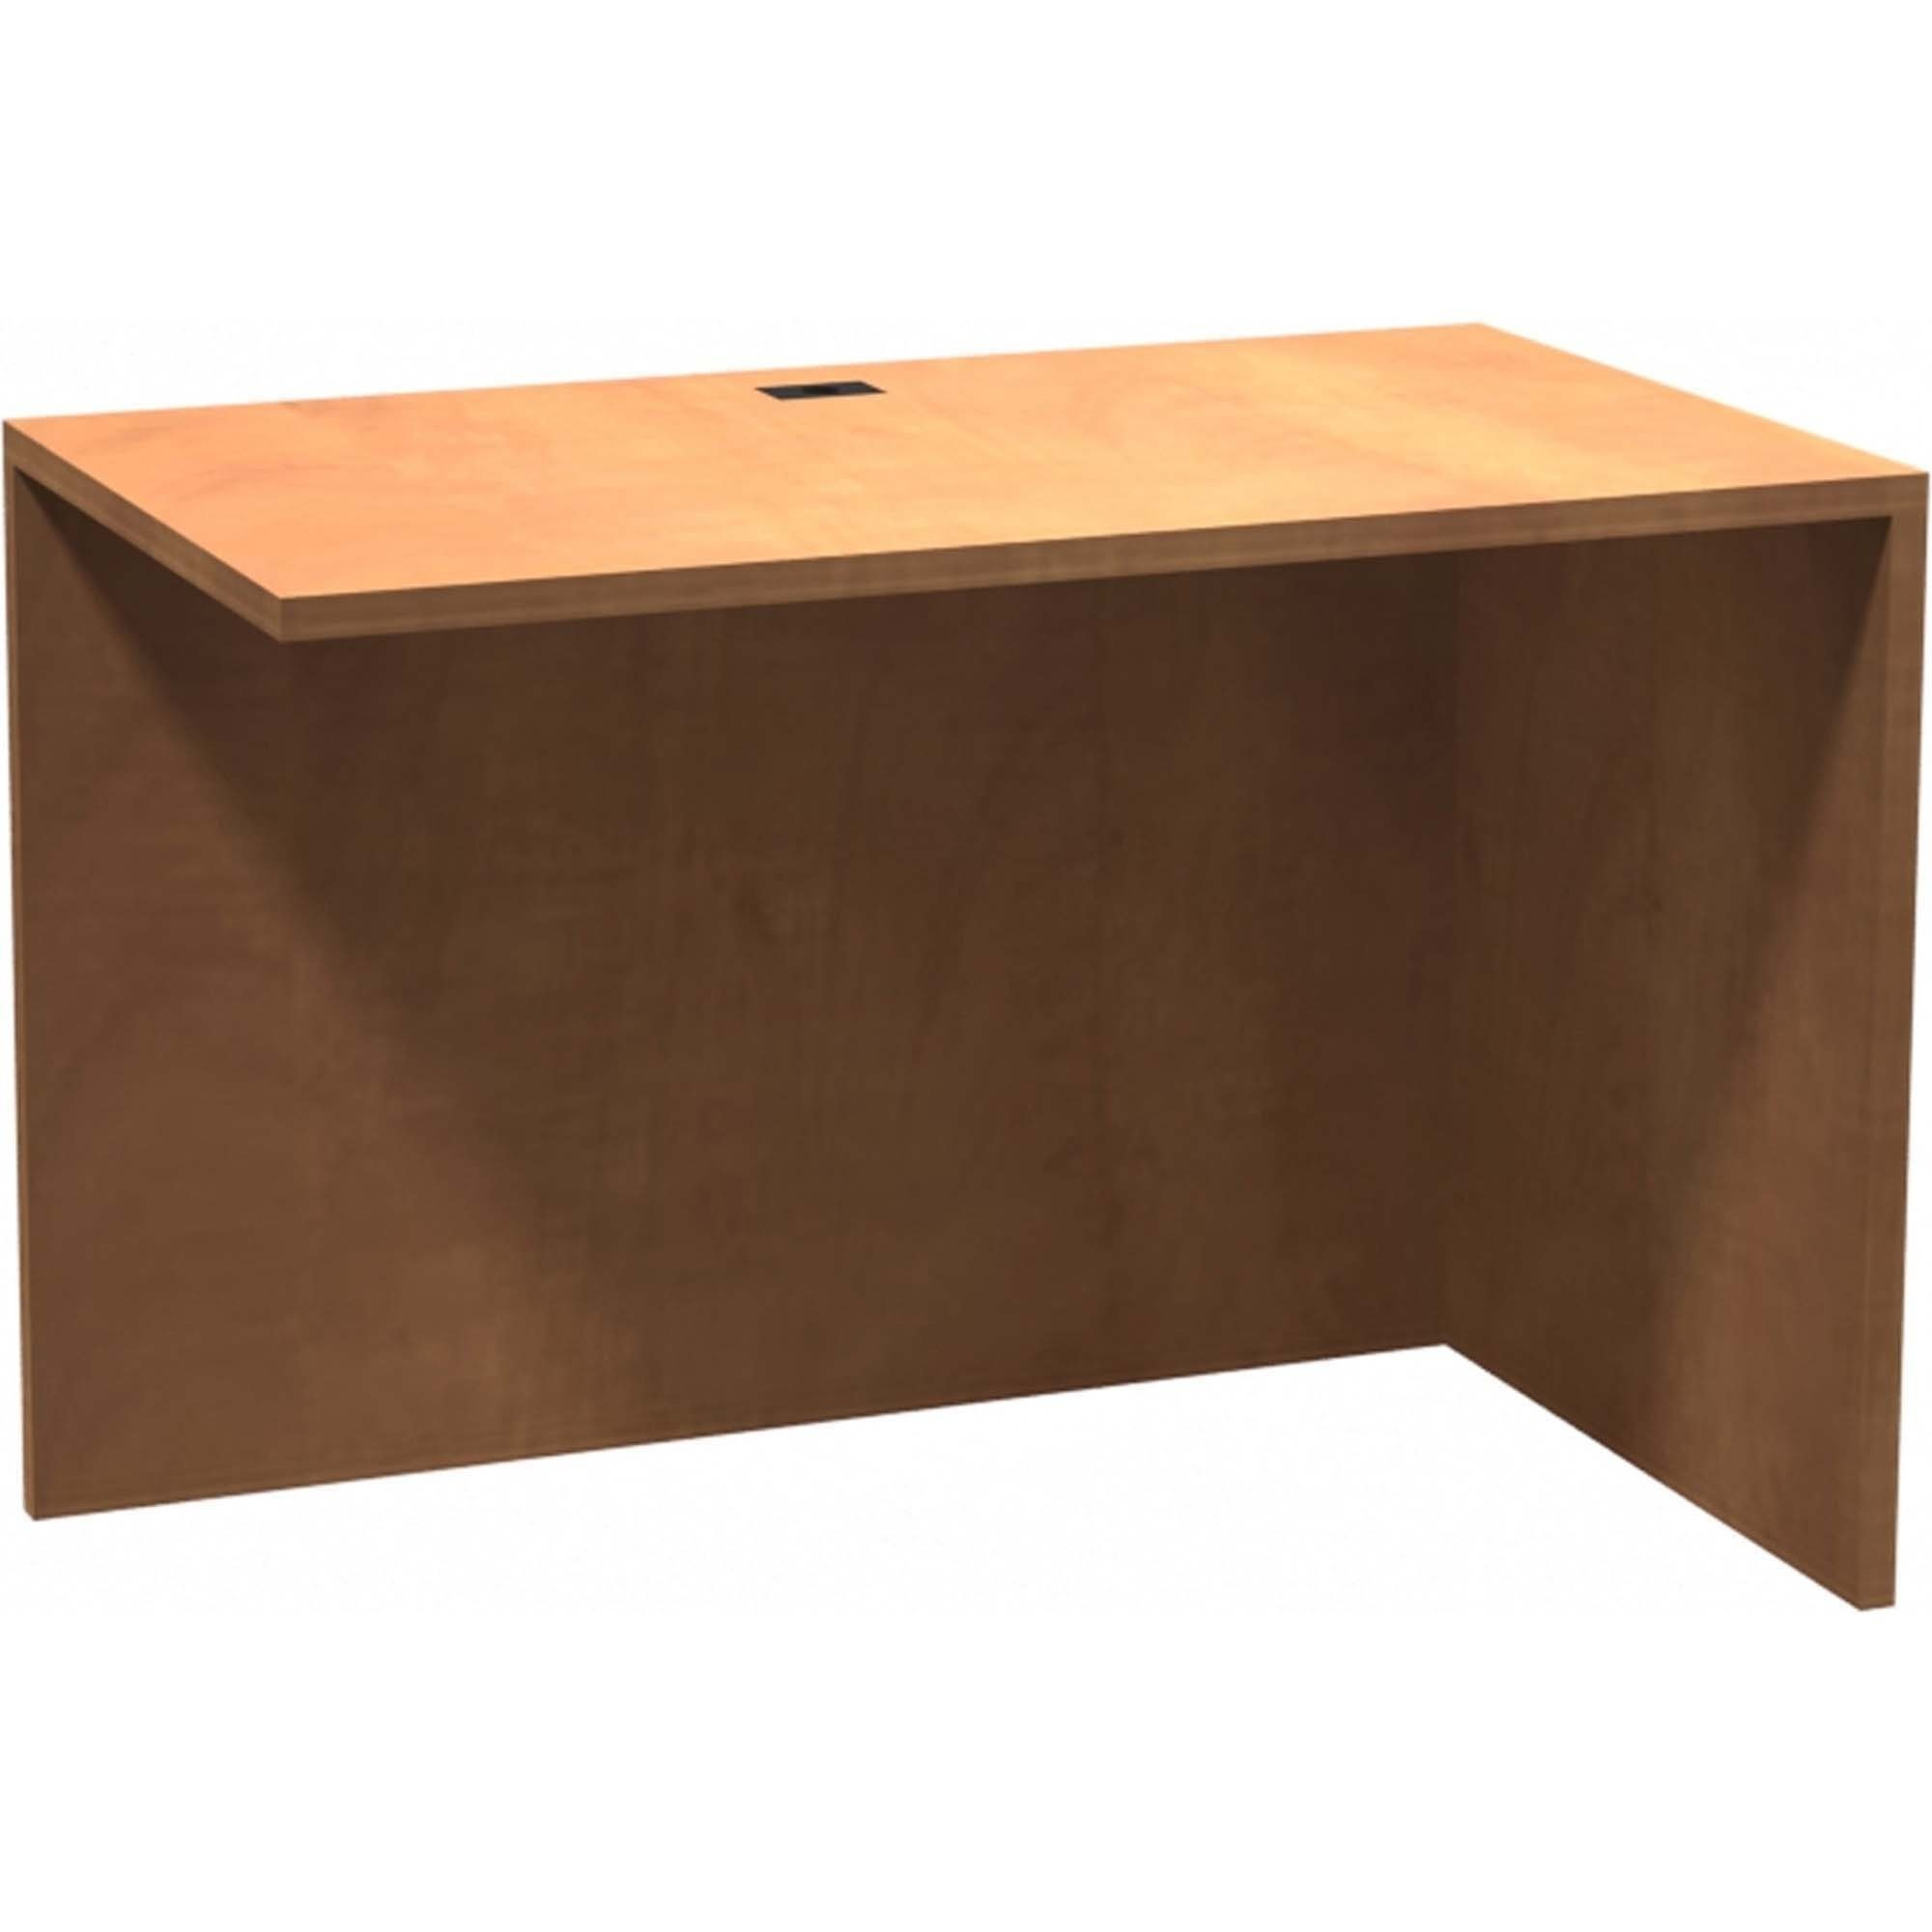 Heartwood Innovations Sugar Maple Laminated Desk Suites Top 41 5 X 23 8 29 Material Wood Grain Particleboard Polyvinyl Chloride Pvc